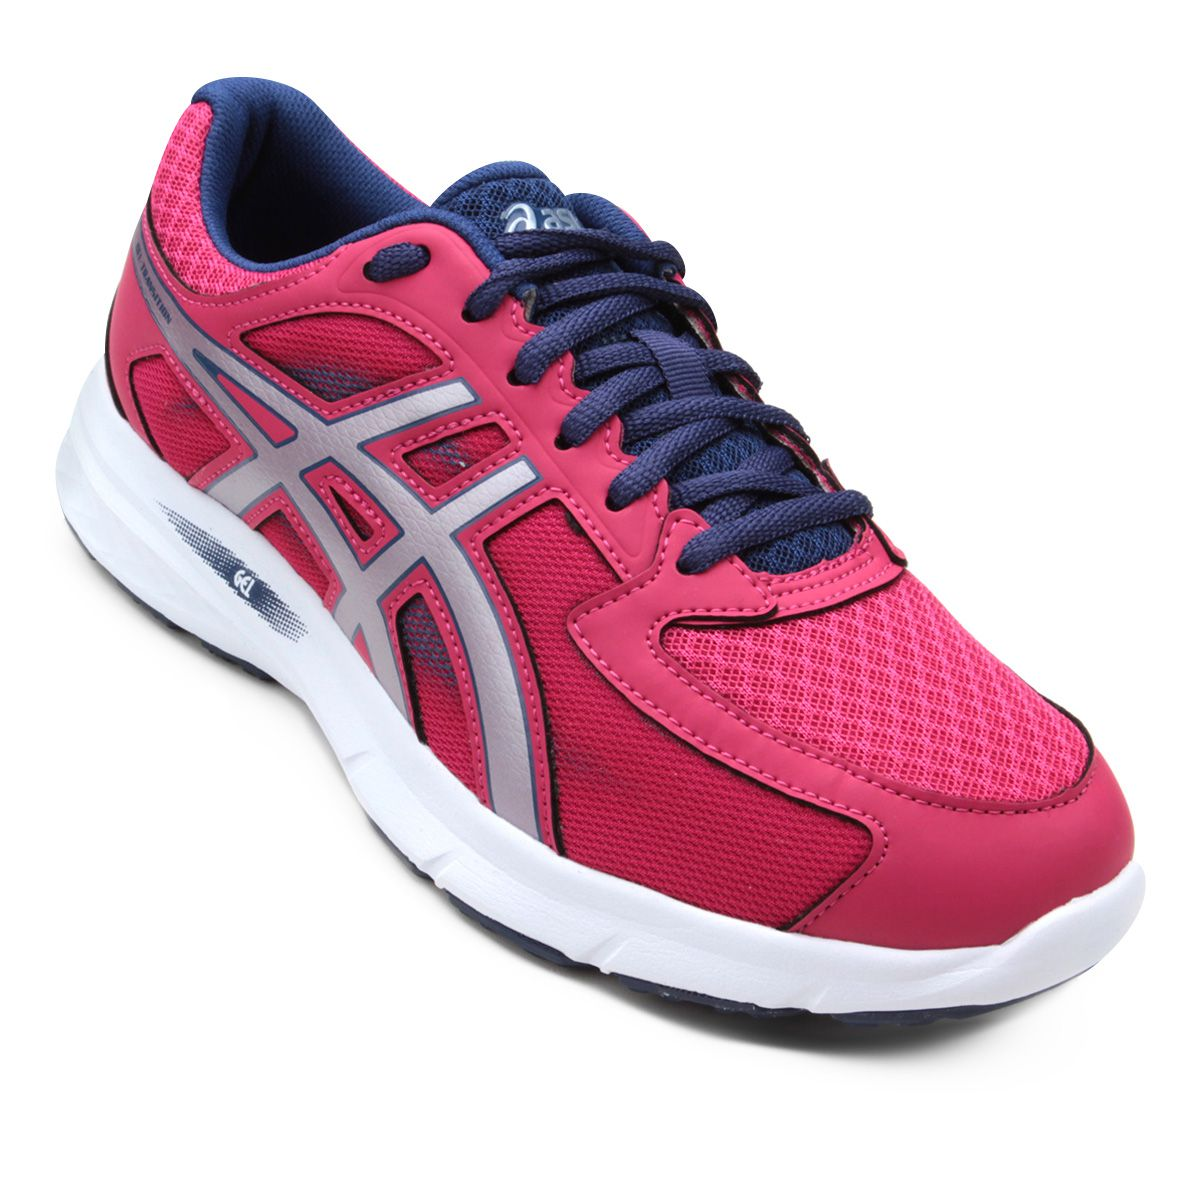 Tenis Asics Gel Transition - 1Z22a004